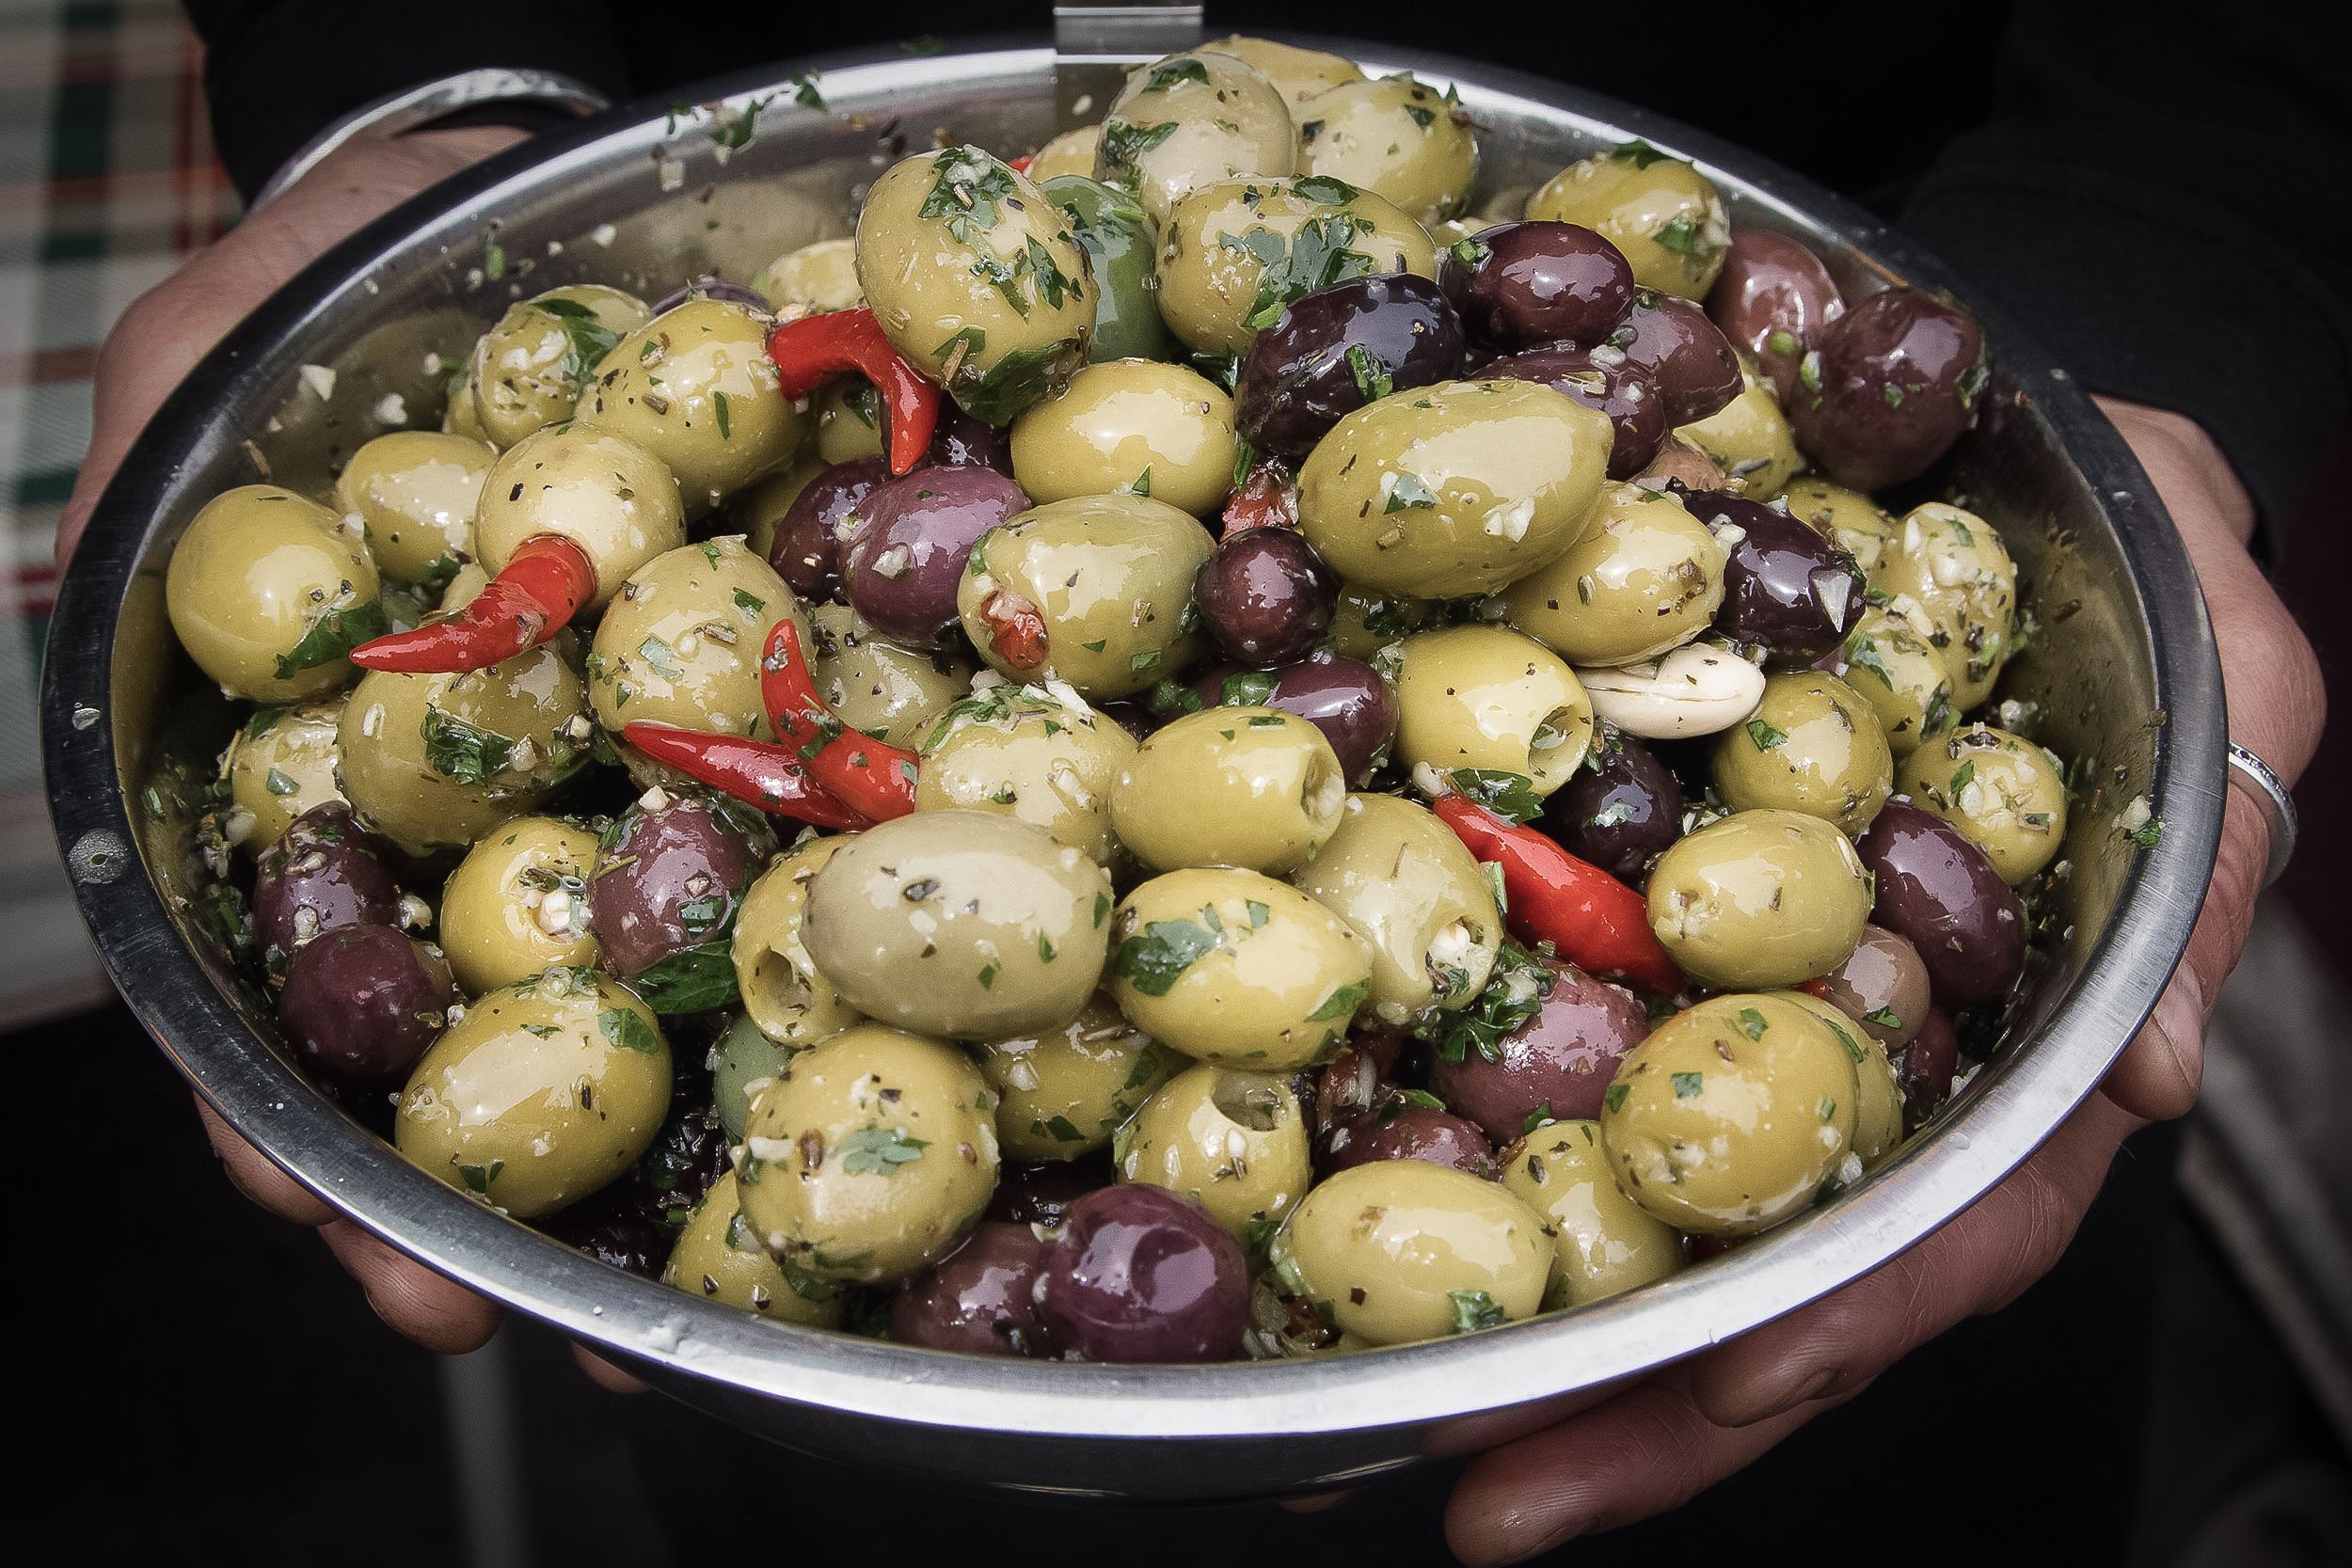 Jules-Olives-homeade-marinades-wholesale-olives-somerset.jpg